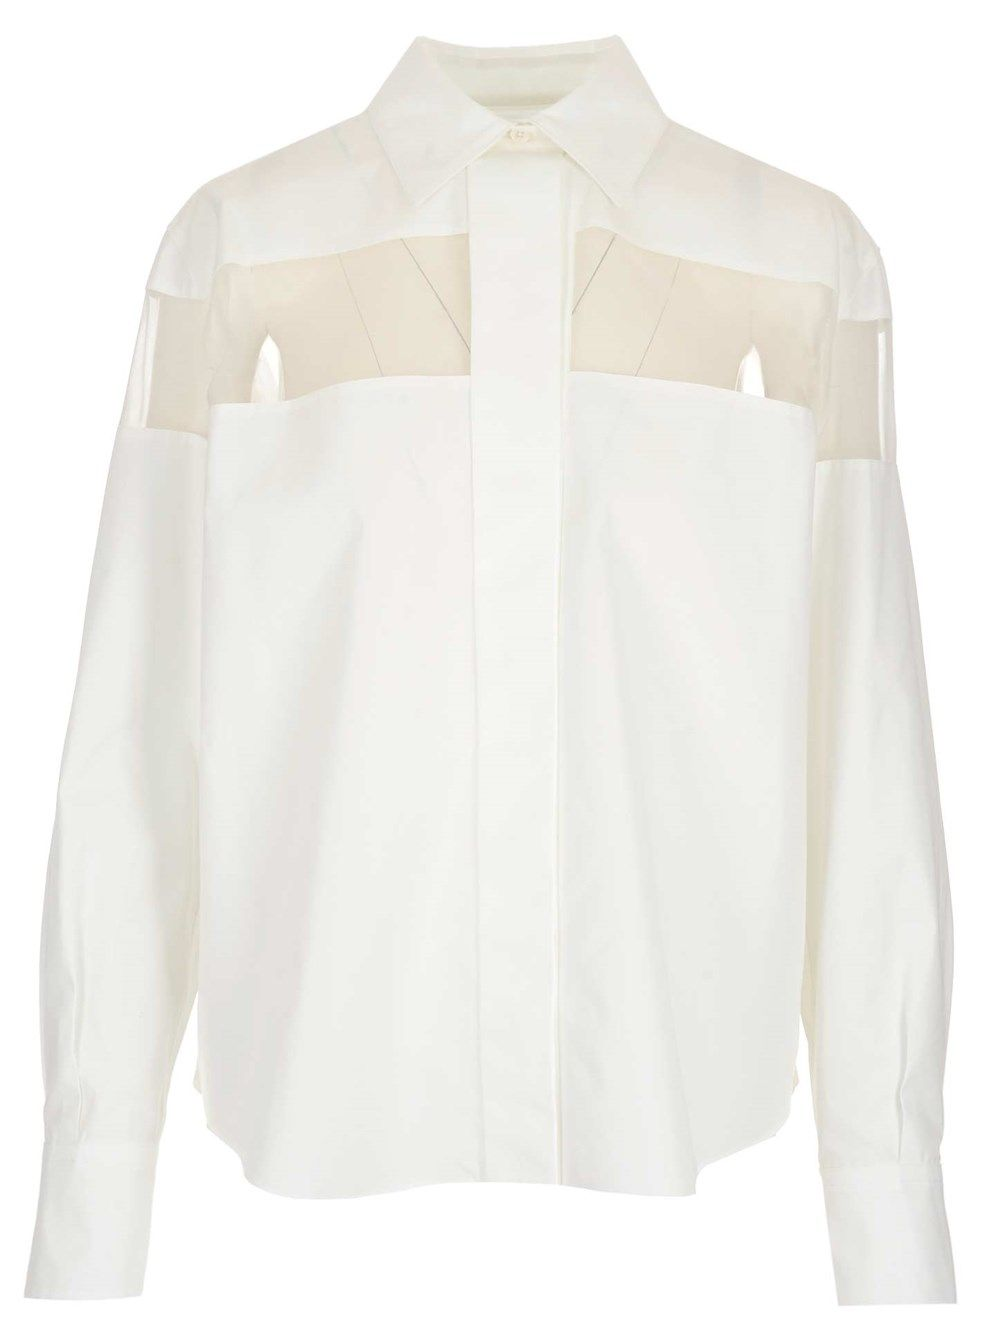 Valentino VALENTINO WOMEN'S VB3AB1V55DN0BO WHITE OTHER MATERIALS SHIRT